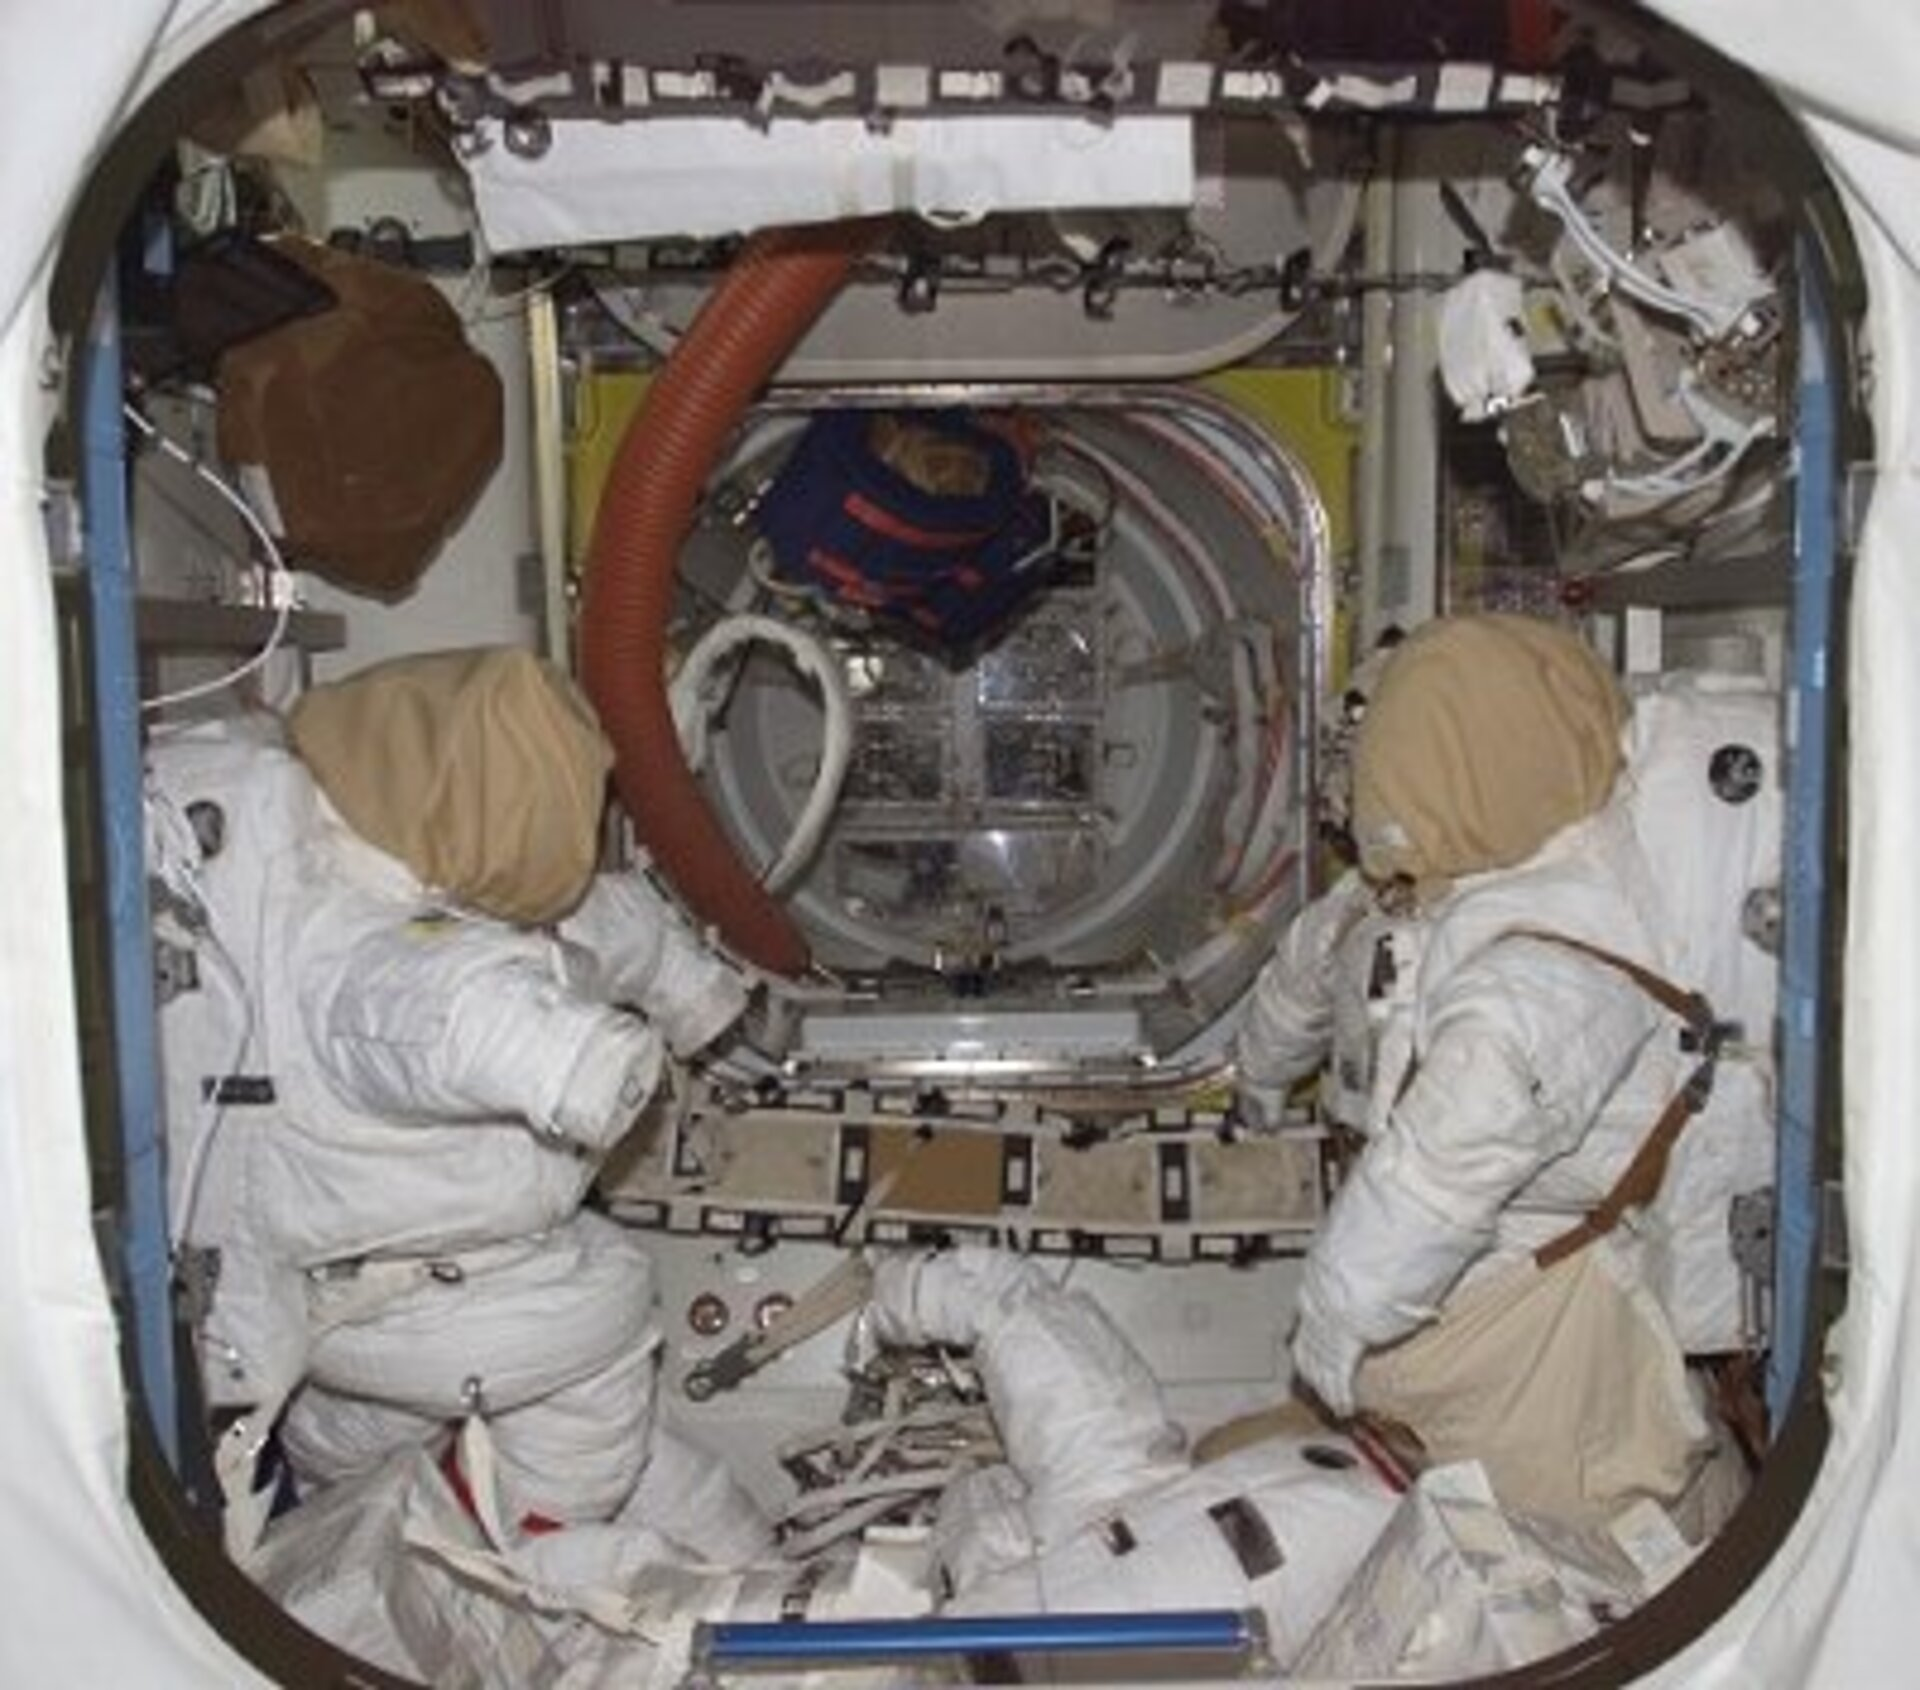 A view of the Quest Joint Airlock - the US EVA spacesuits, like those to be worn by Reiter and Williams on 3 August, are seen to the left and right